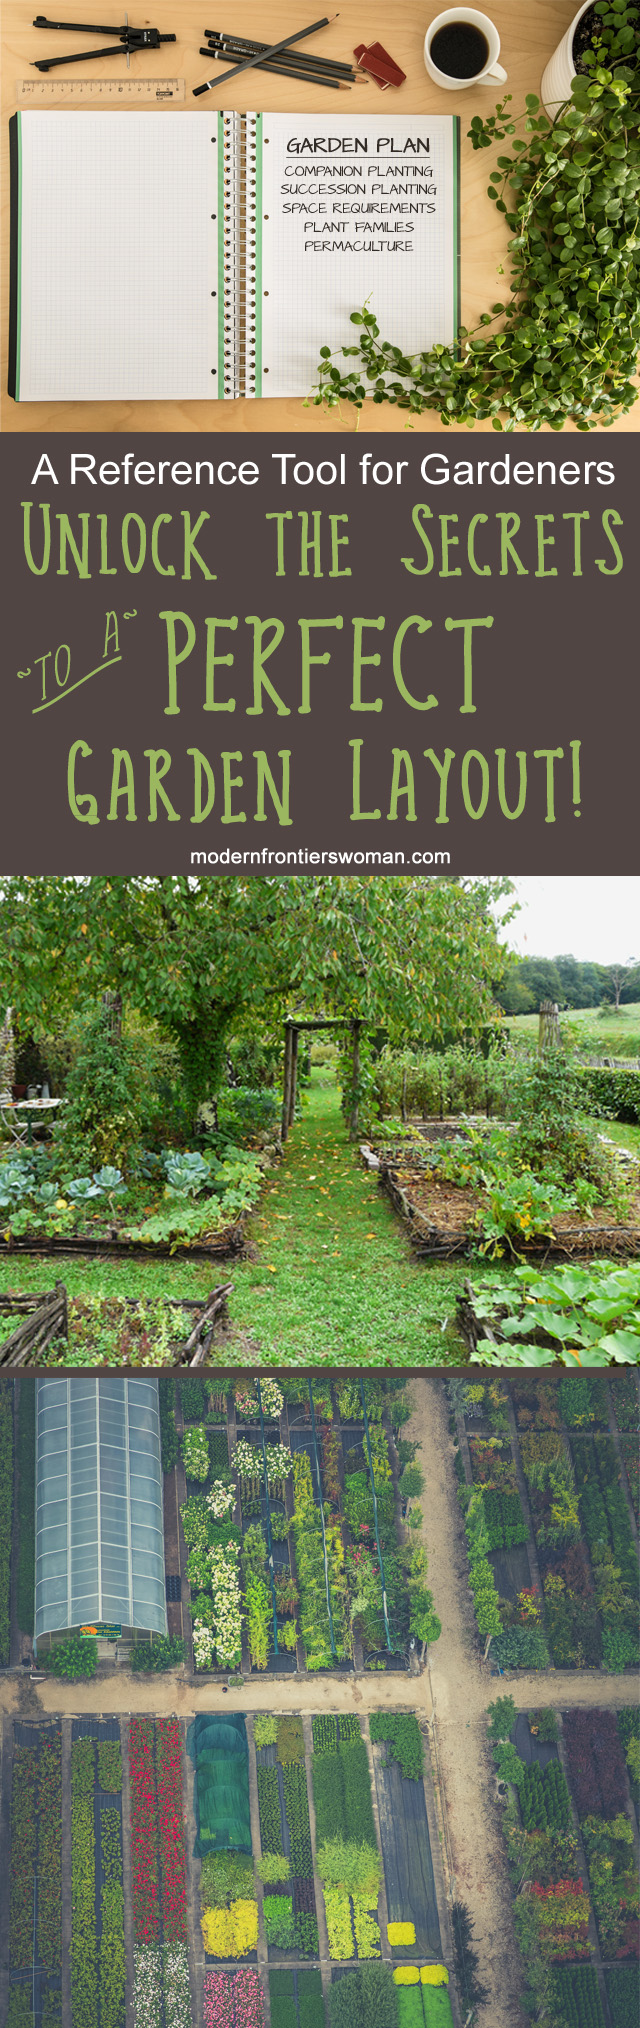 Unlock the Secrets to a Perfect Garden Layout